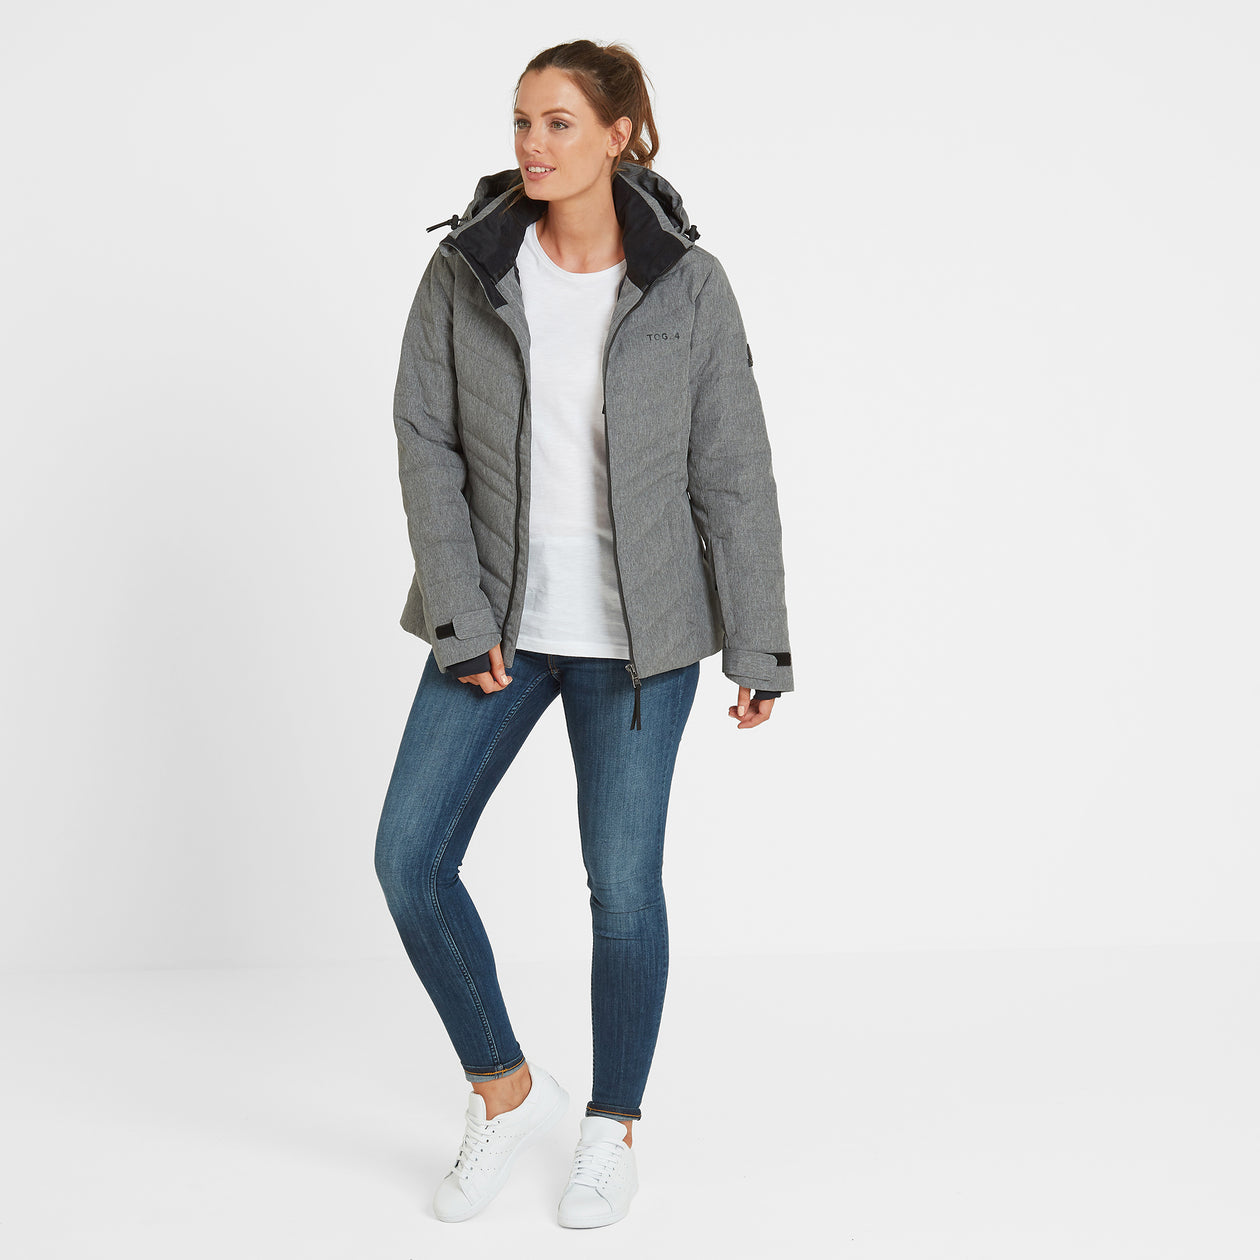 Shaw Womens Winter Jacket - Grey Marl image 4